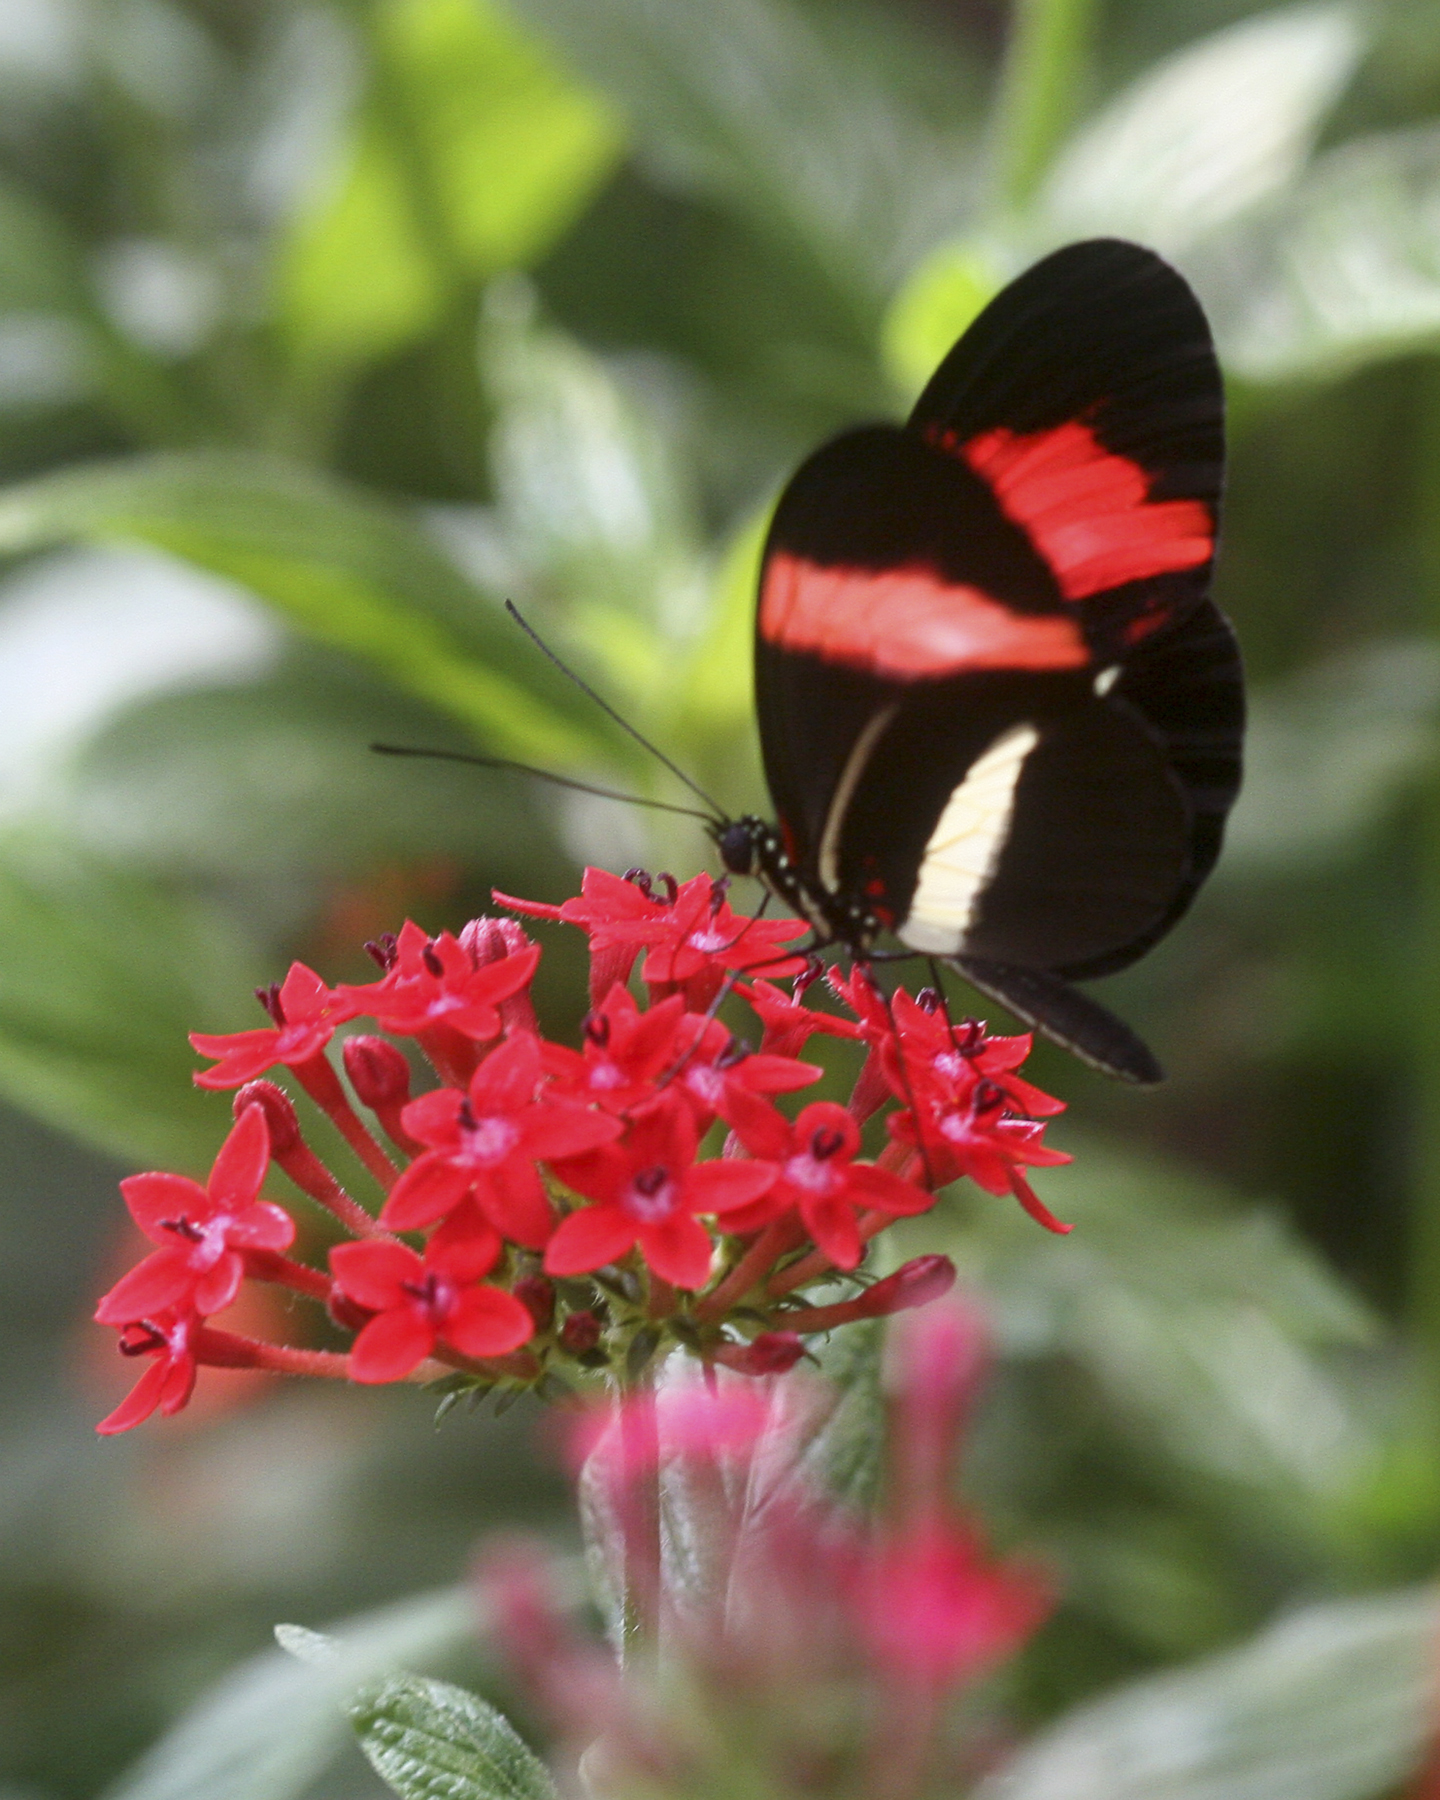 ed 258 red butterfly on red flower 2 IMG_5014 copy.jpg